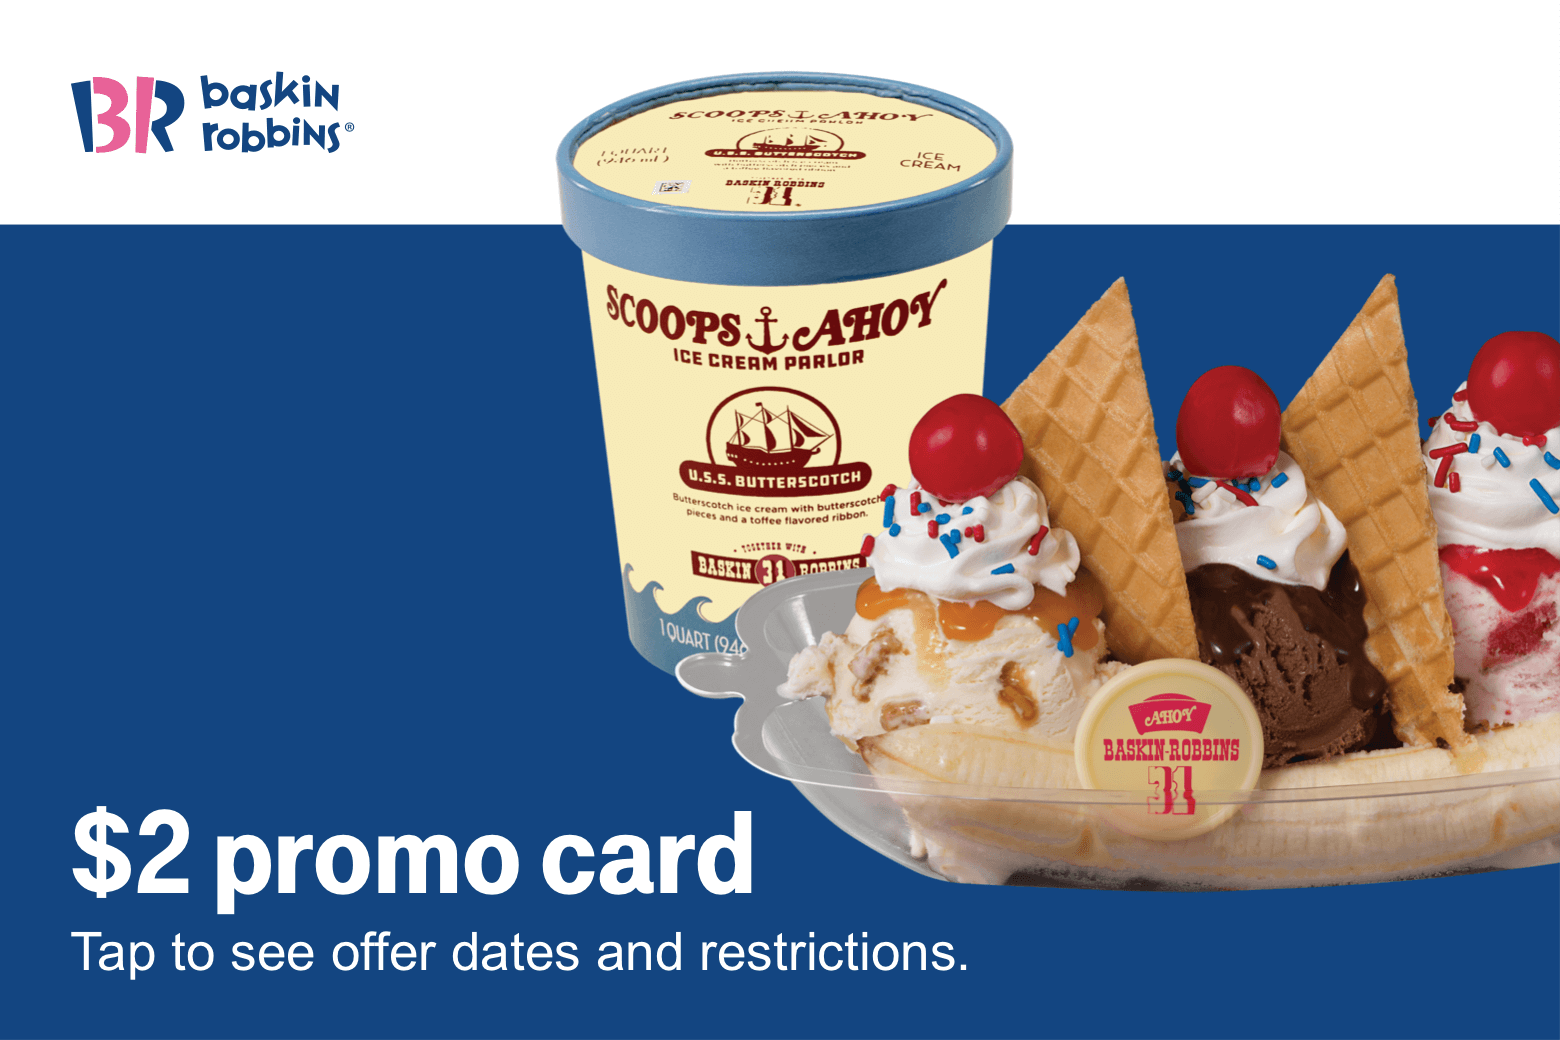 Baskin Robbins. $2 promo card. Tap to see offer dates and restrictions.